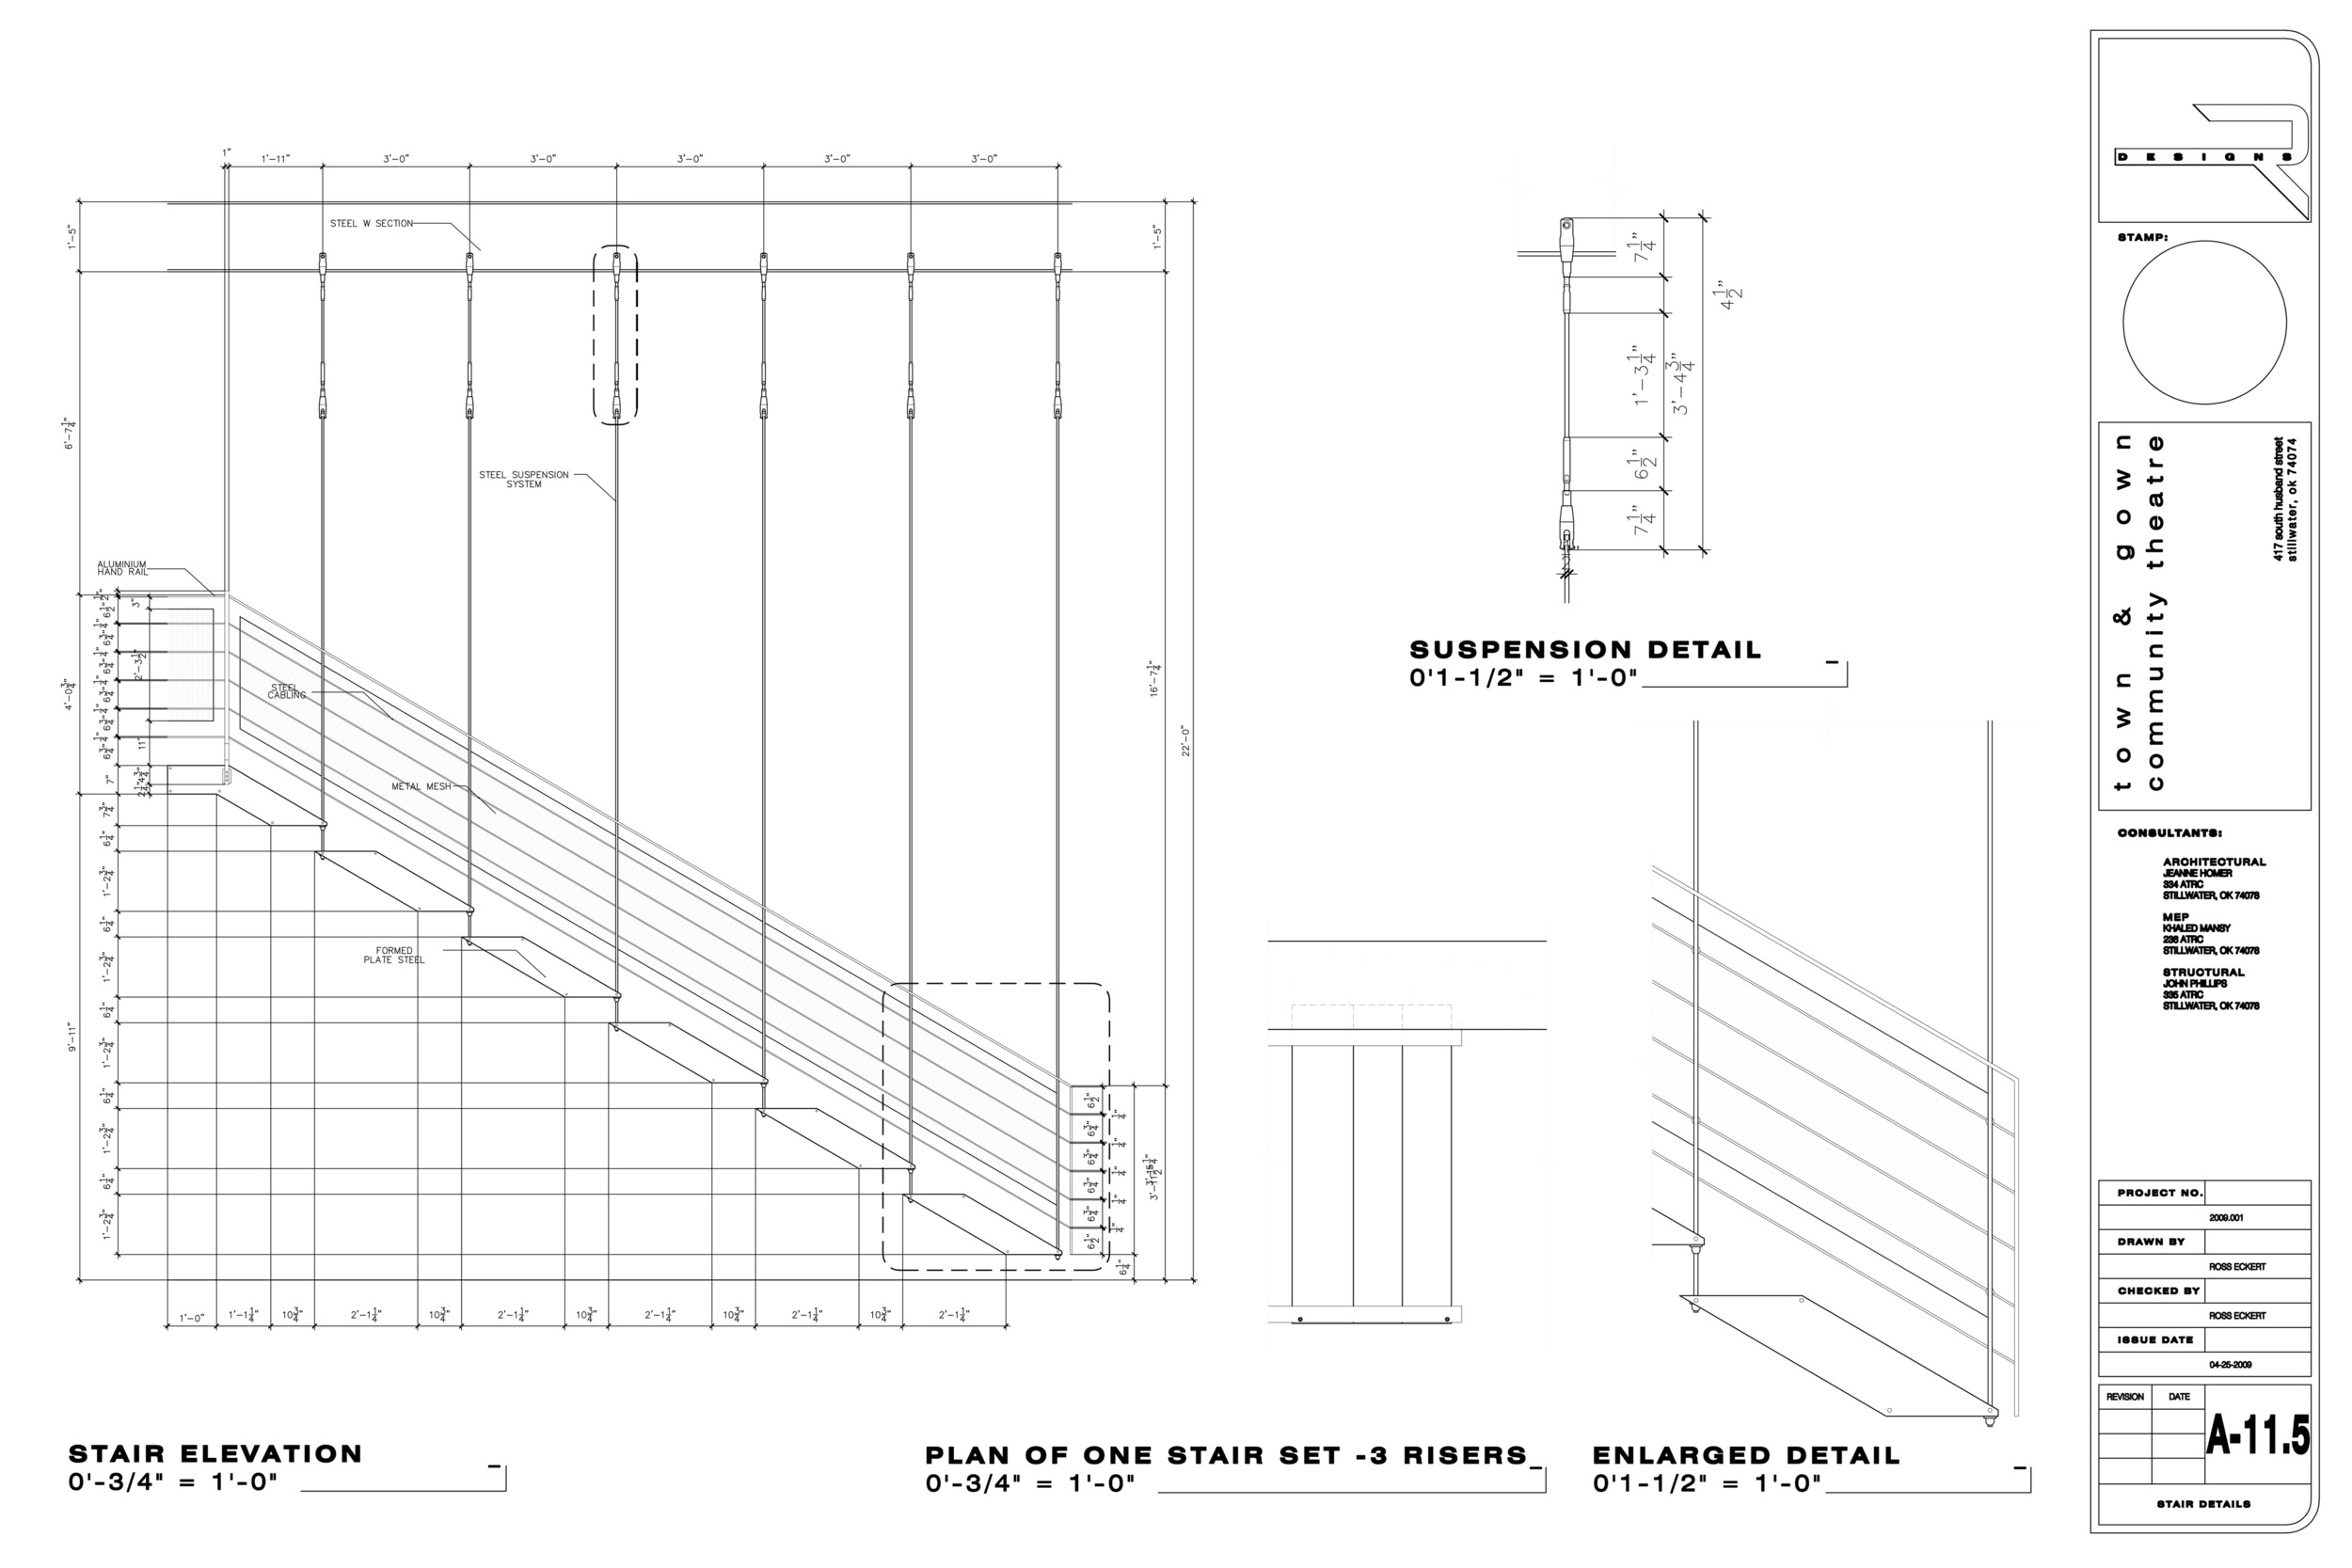 Academic construction documents, stair details